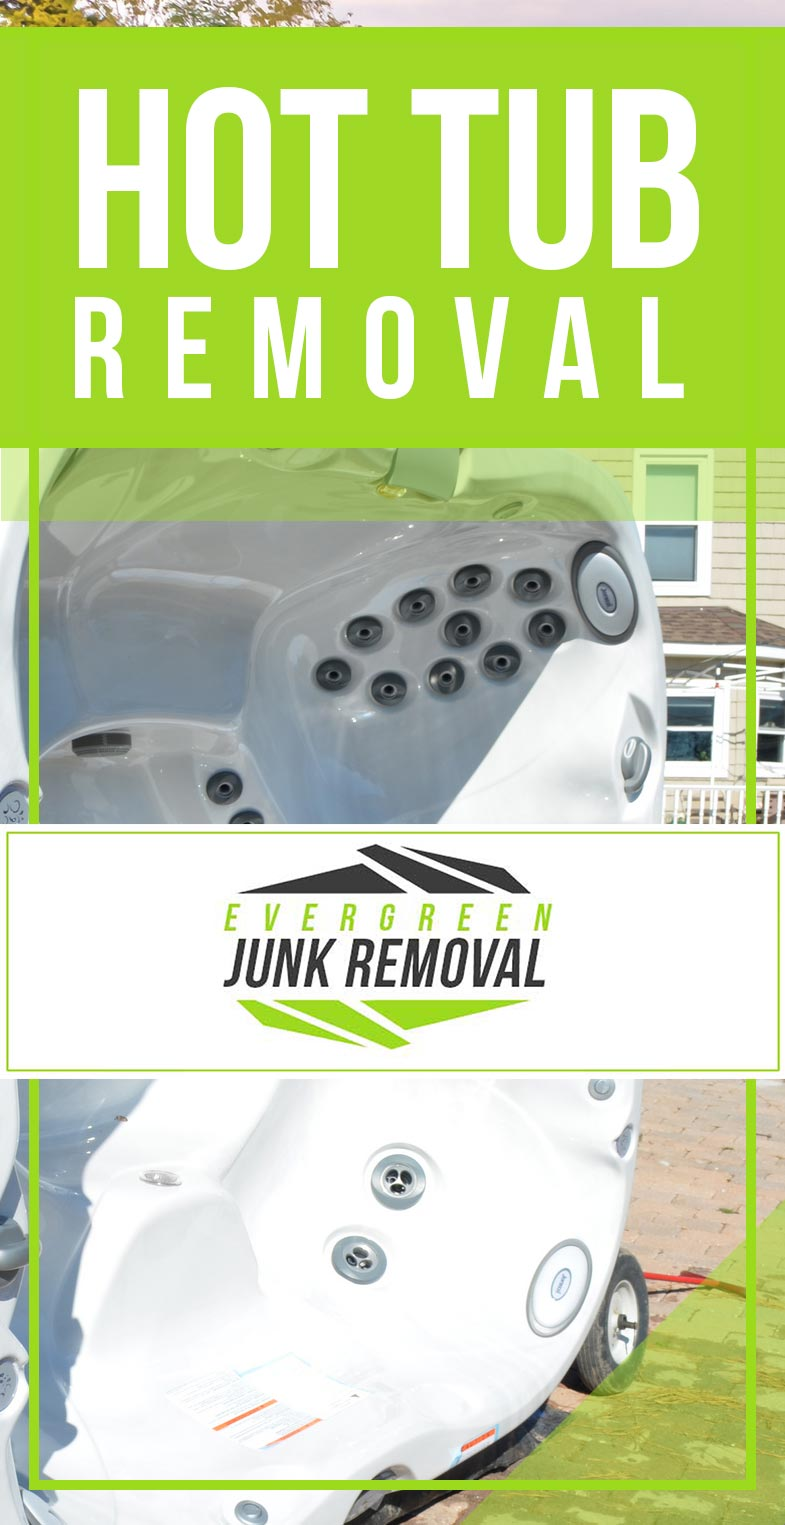 Channelview Hot Tub Removal